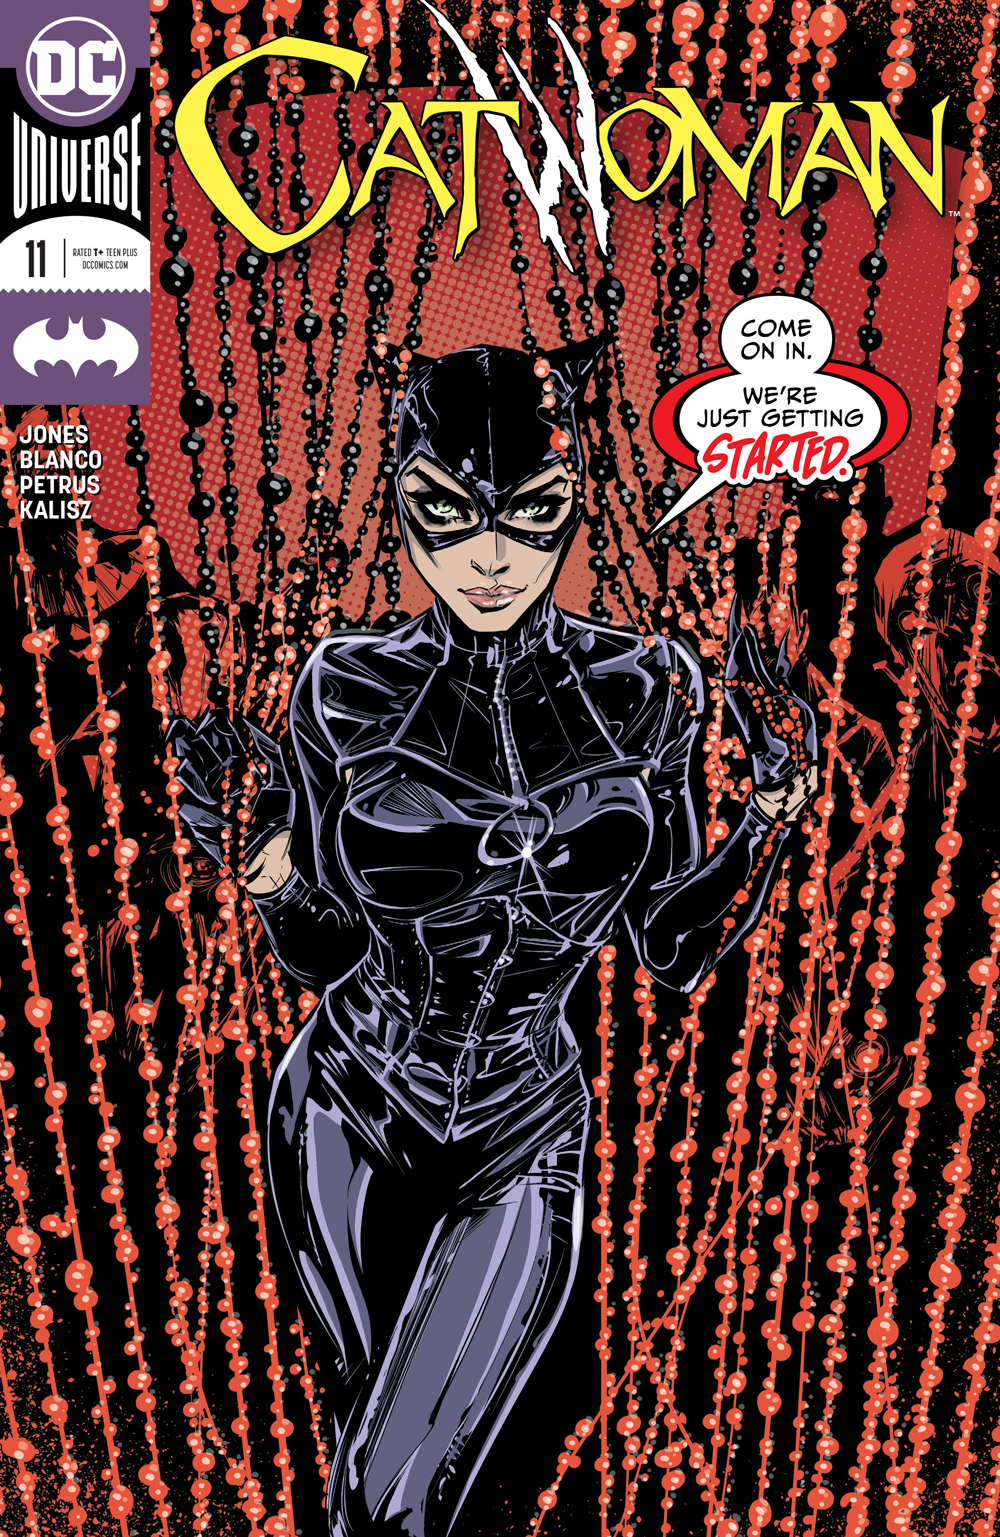 MAR190498 - CATWOMAN #11 - Previews World